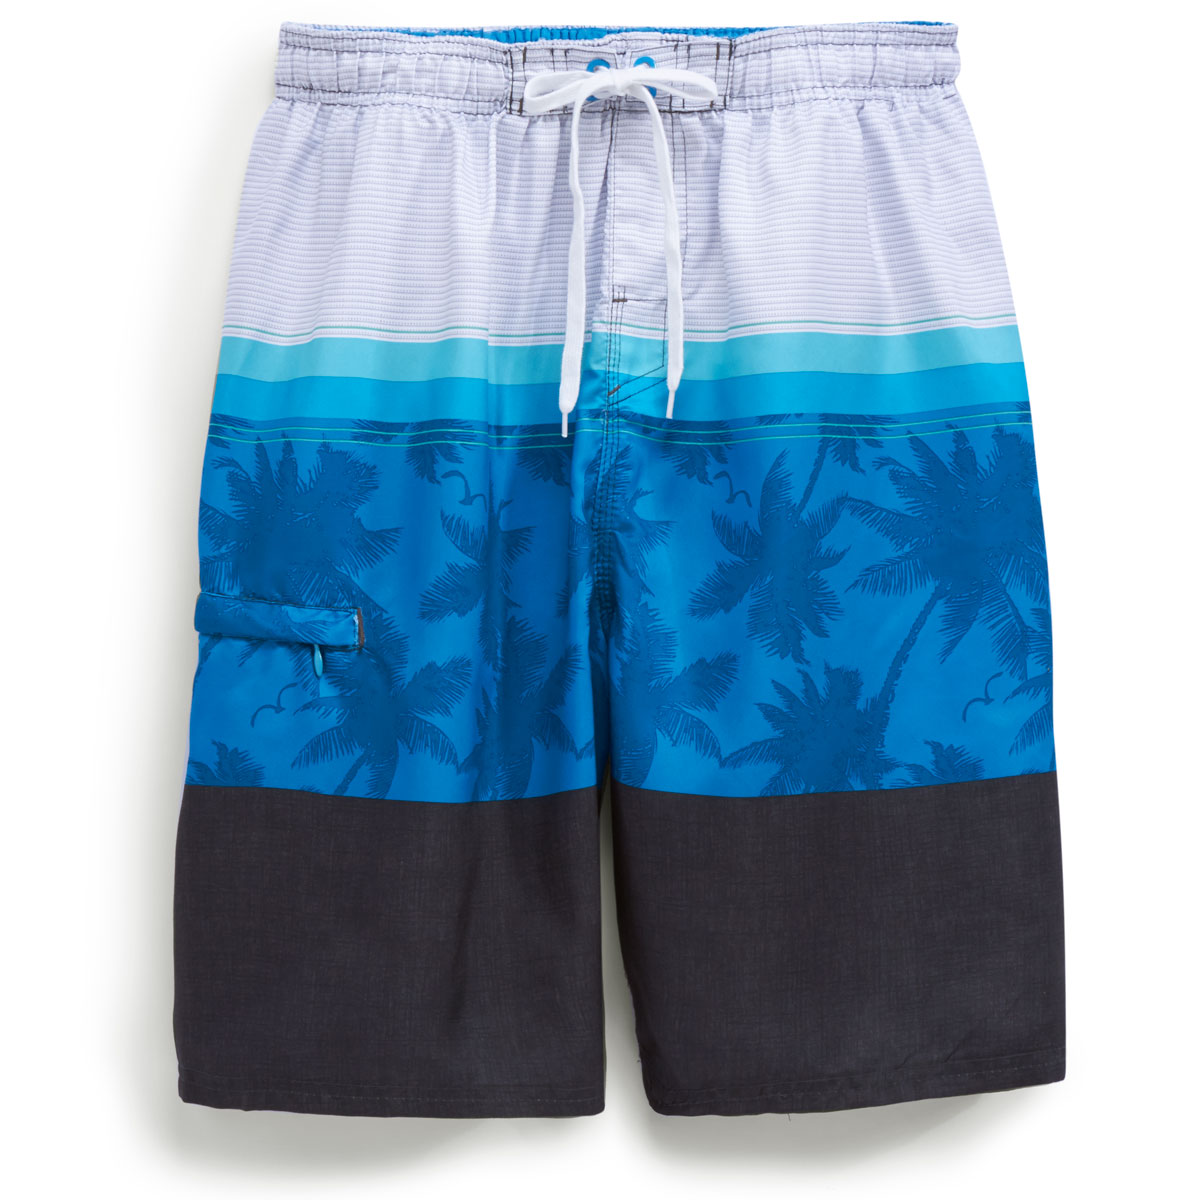 Burnside Men's Molokai Boardshorts - Blue, S